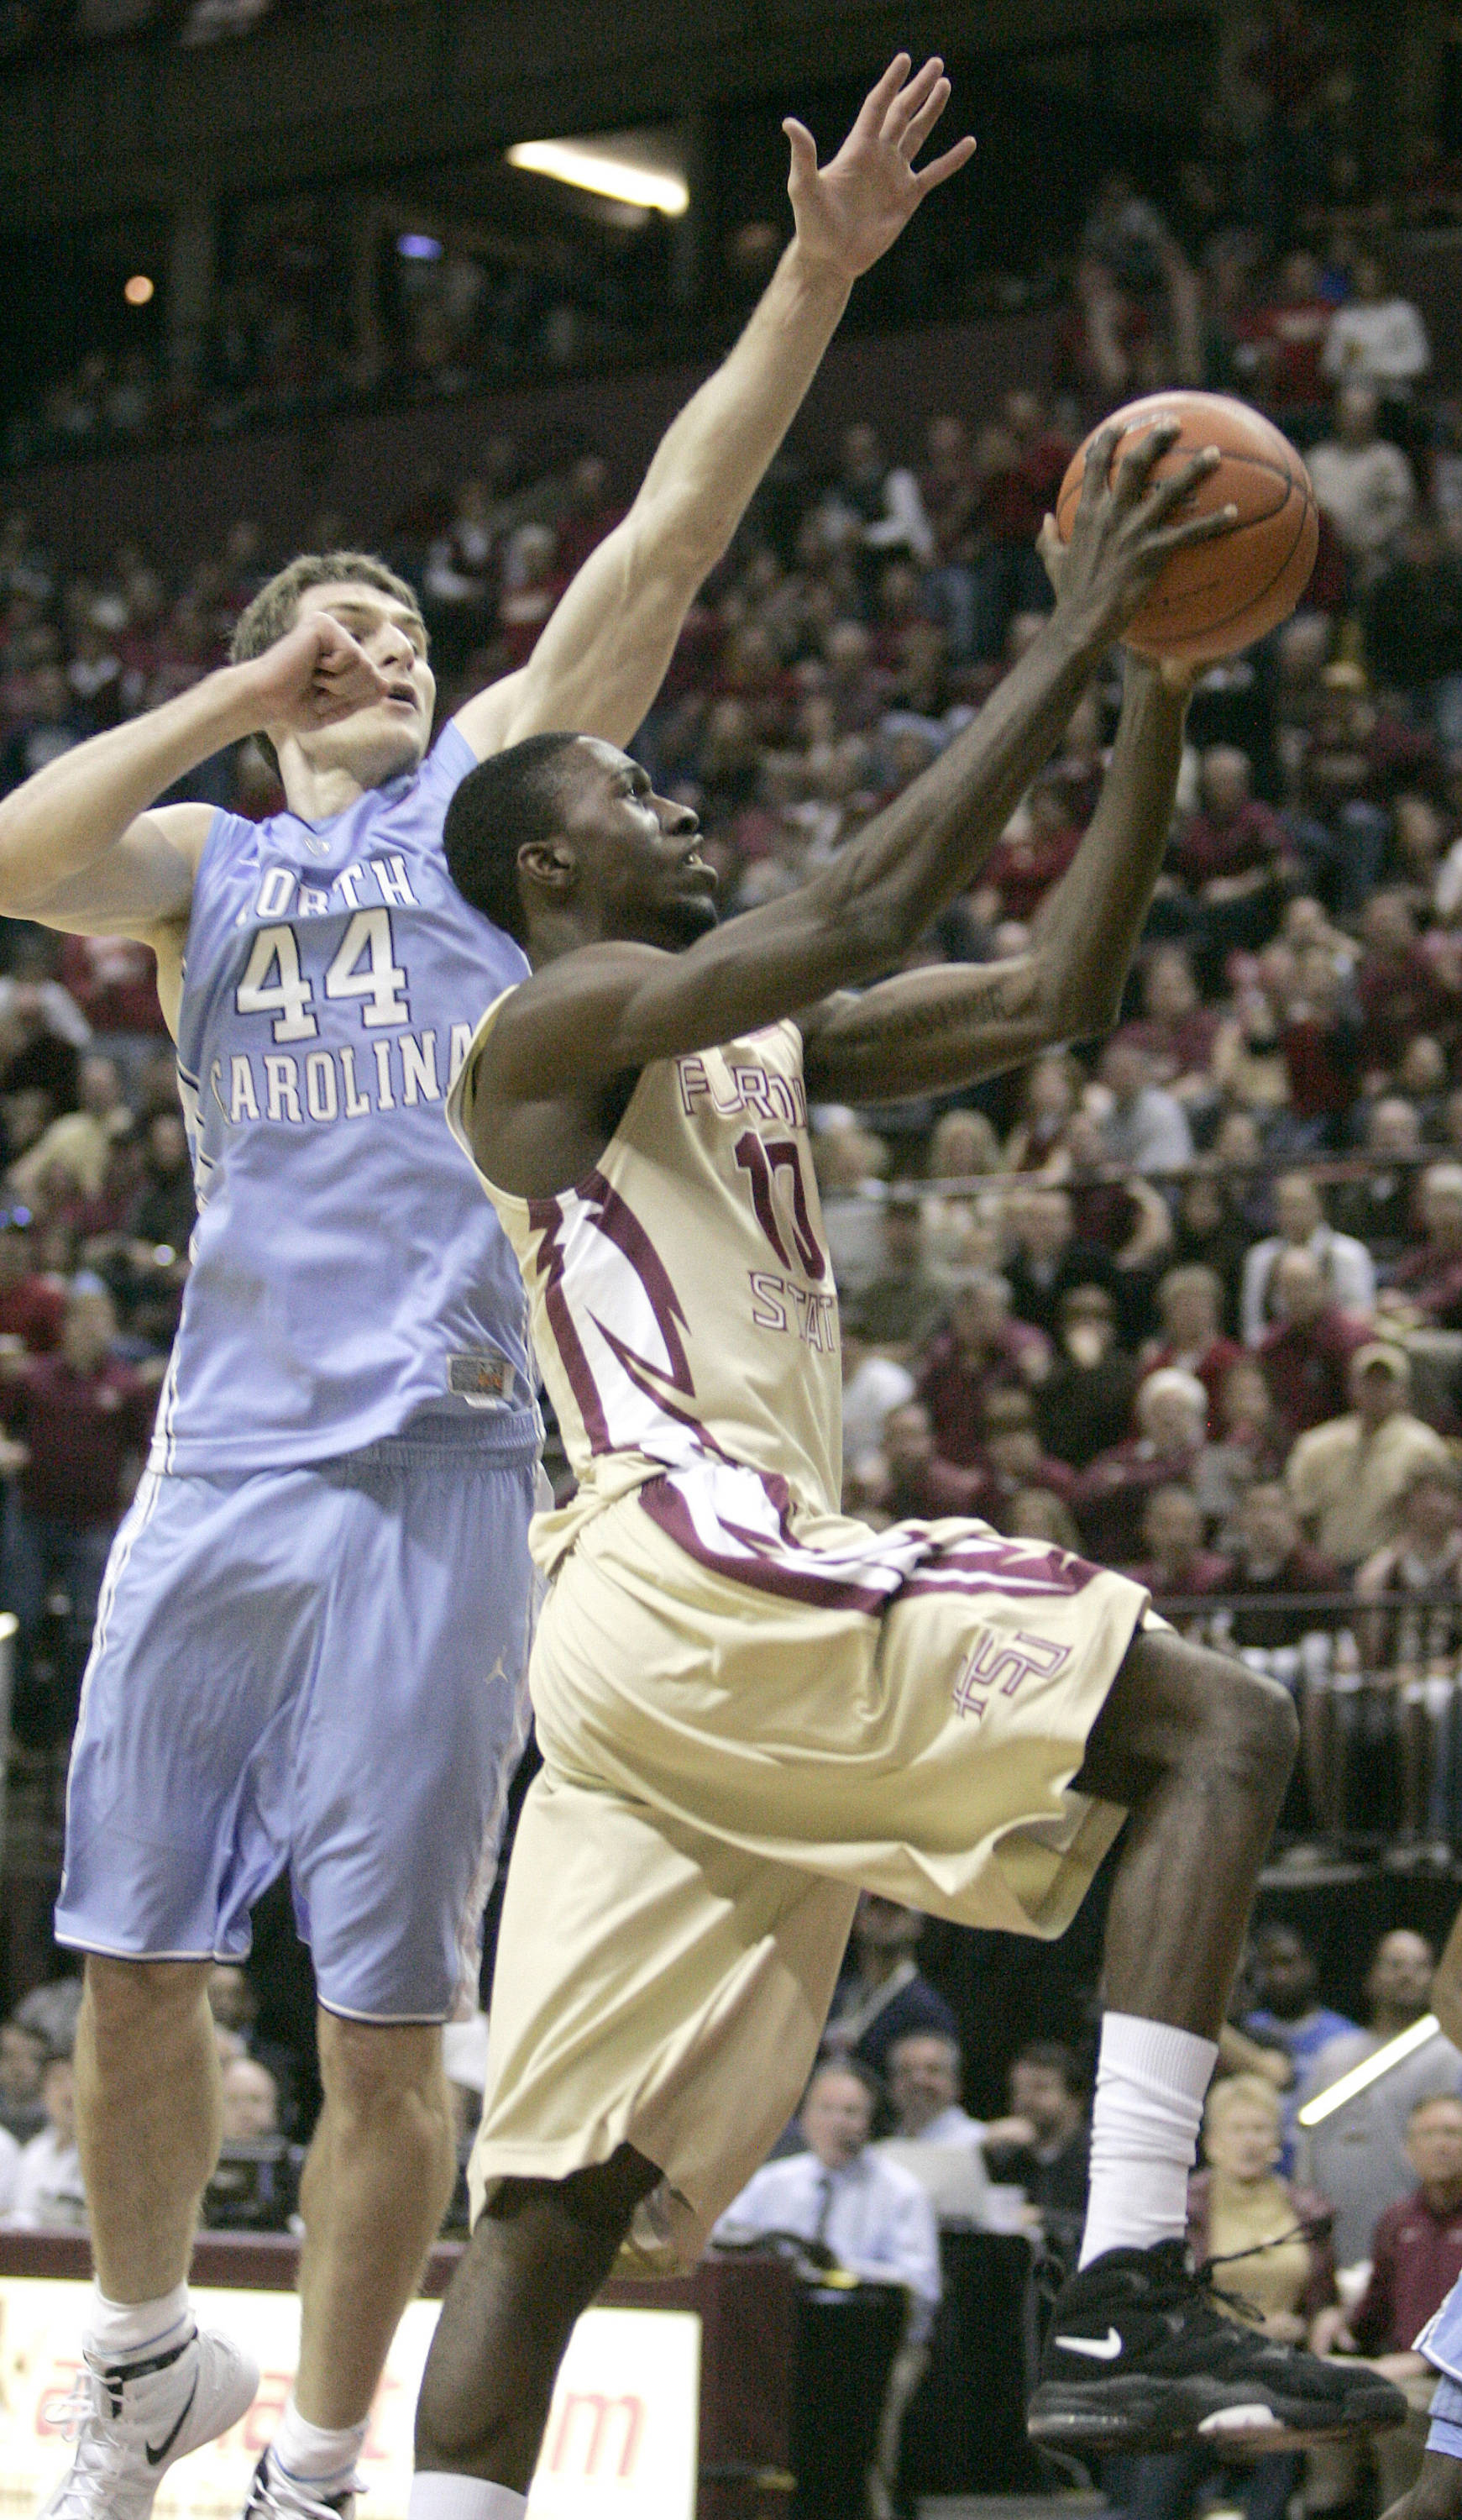 Florida State's Okaro White pushes past past the defense of North Carolina's Tyler Zeller (44) to attempt a shot in the first half of an NCAA college basketball game on Saturday, Jan. 14, 2012, in Tallahassee, Fla.(AP Photo/Steve Cannon)